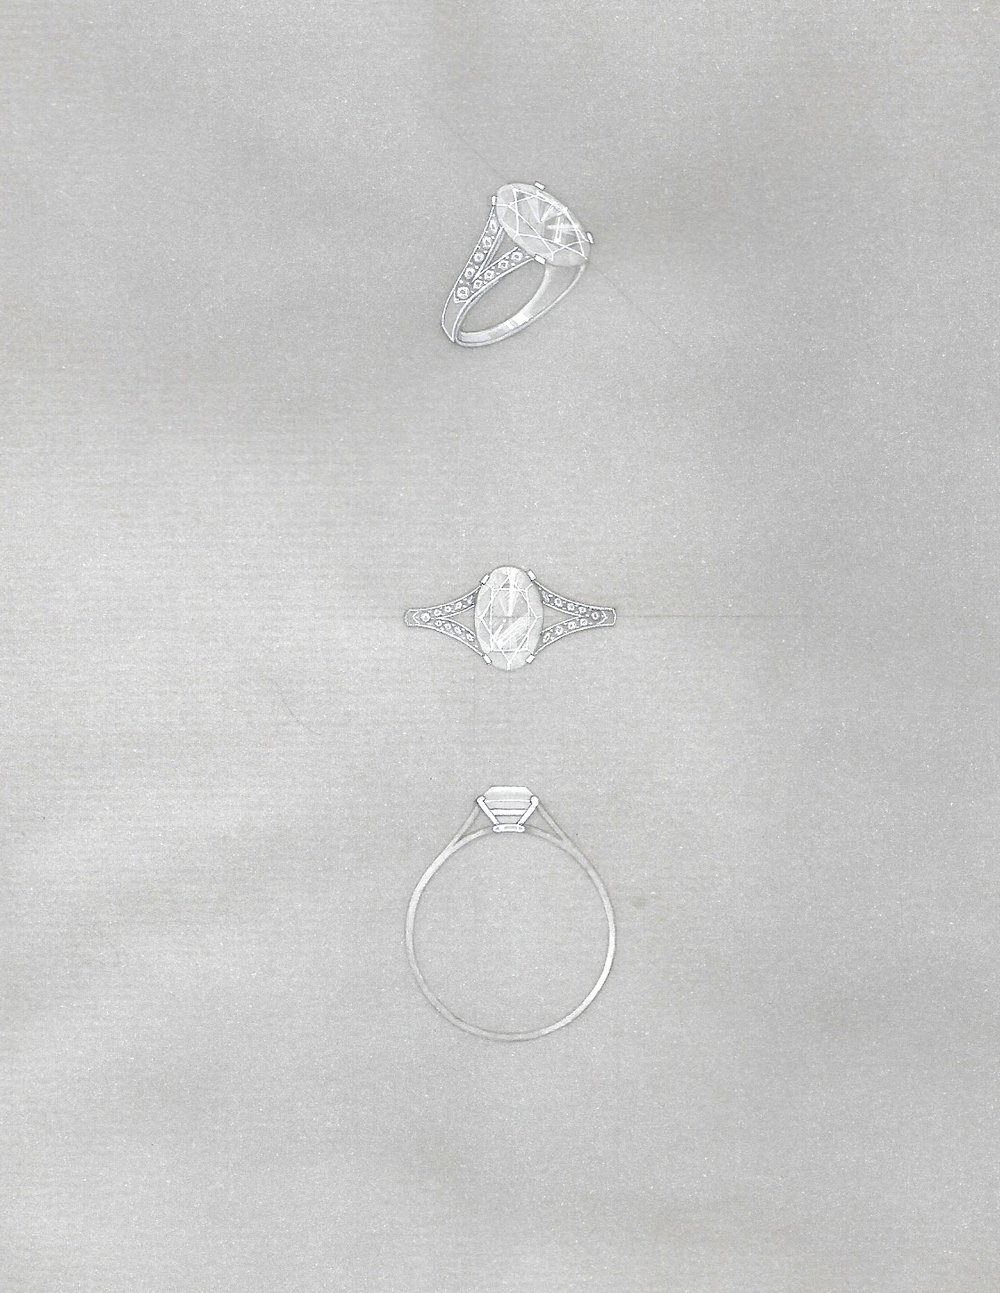 The working drawing for a bespoke engagement ring in diamonds and set in white gold.